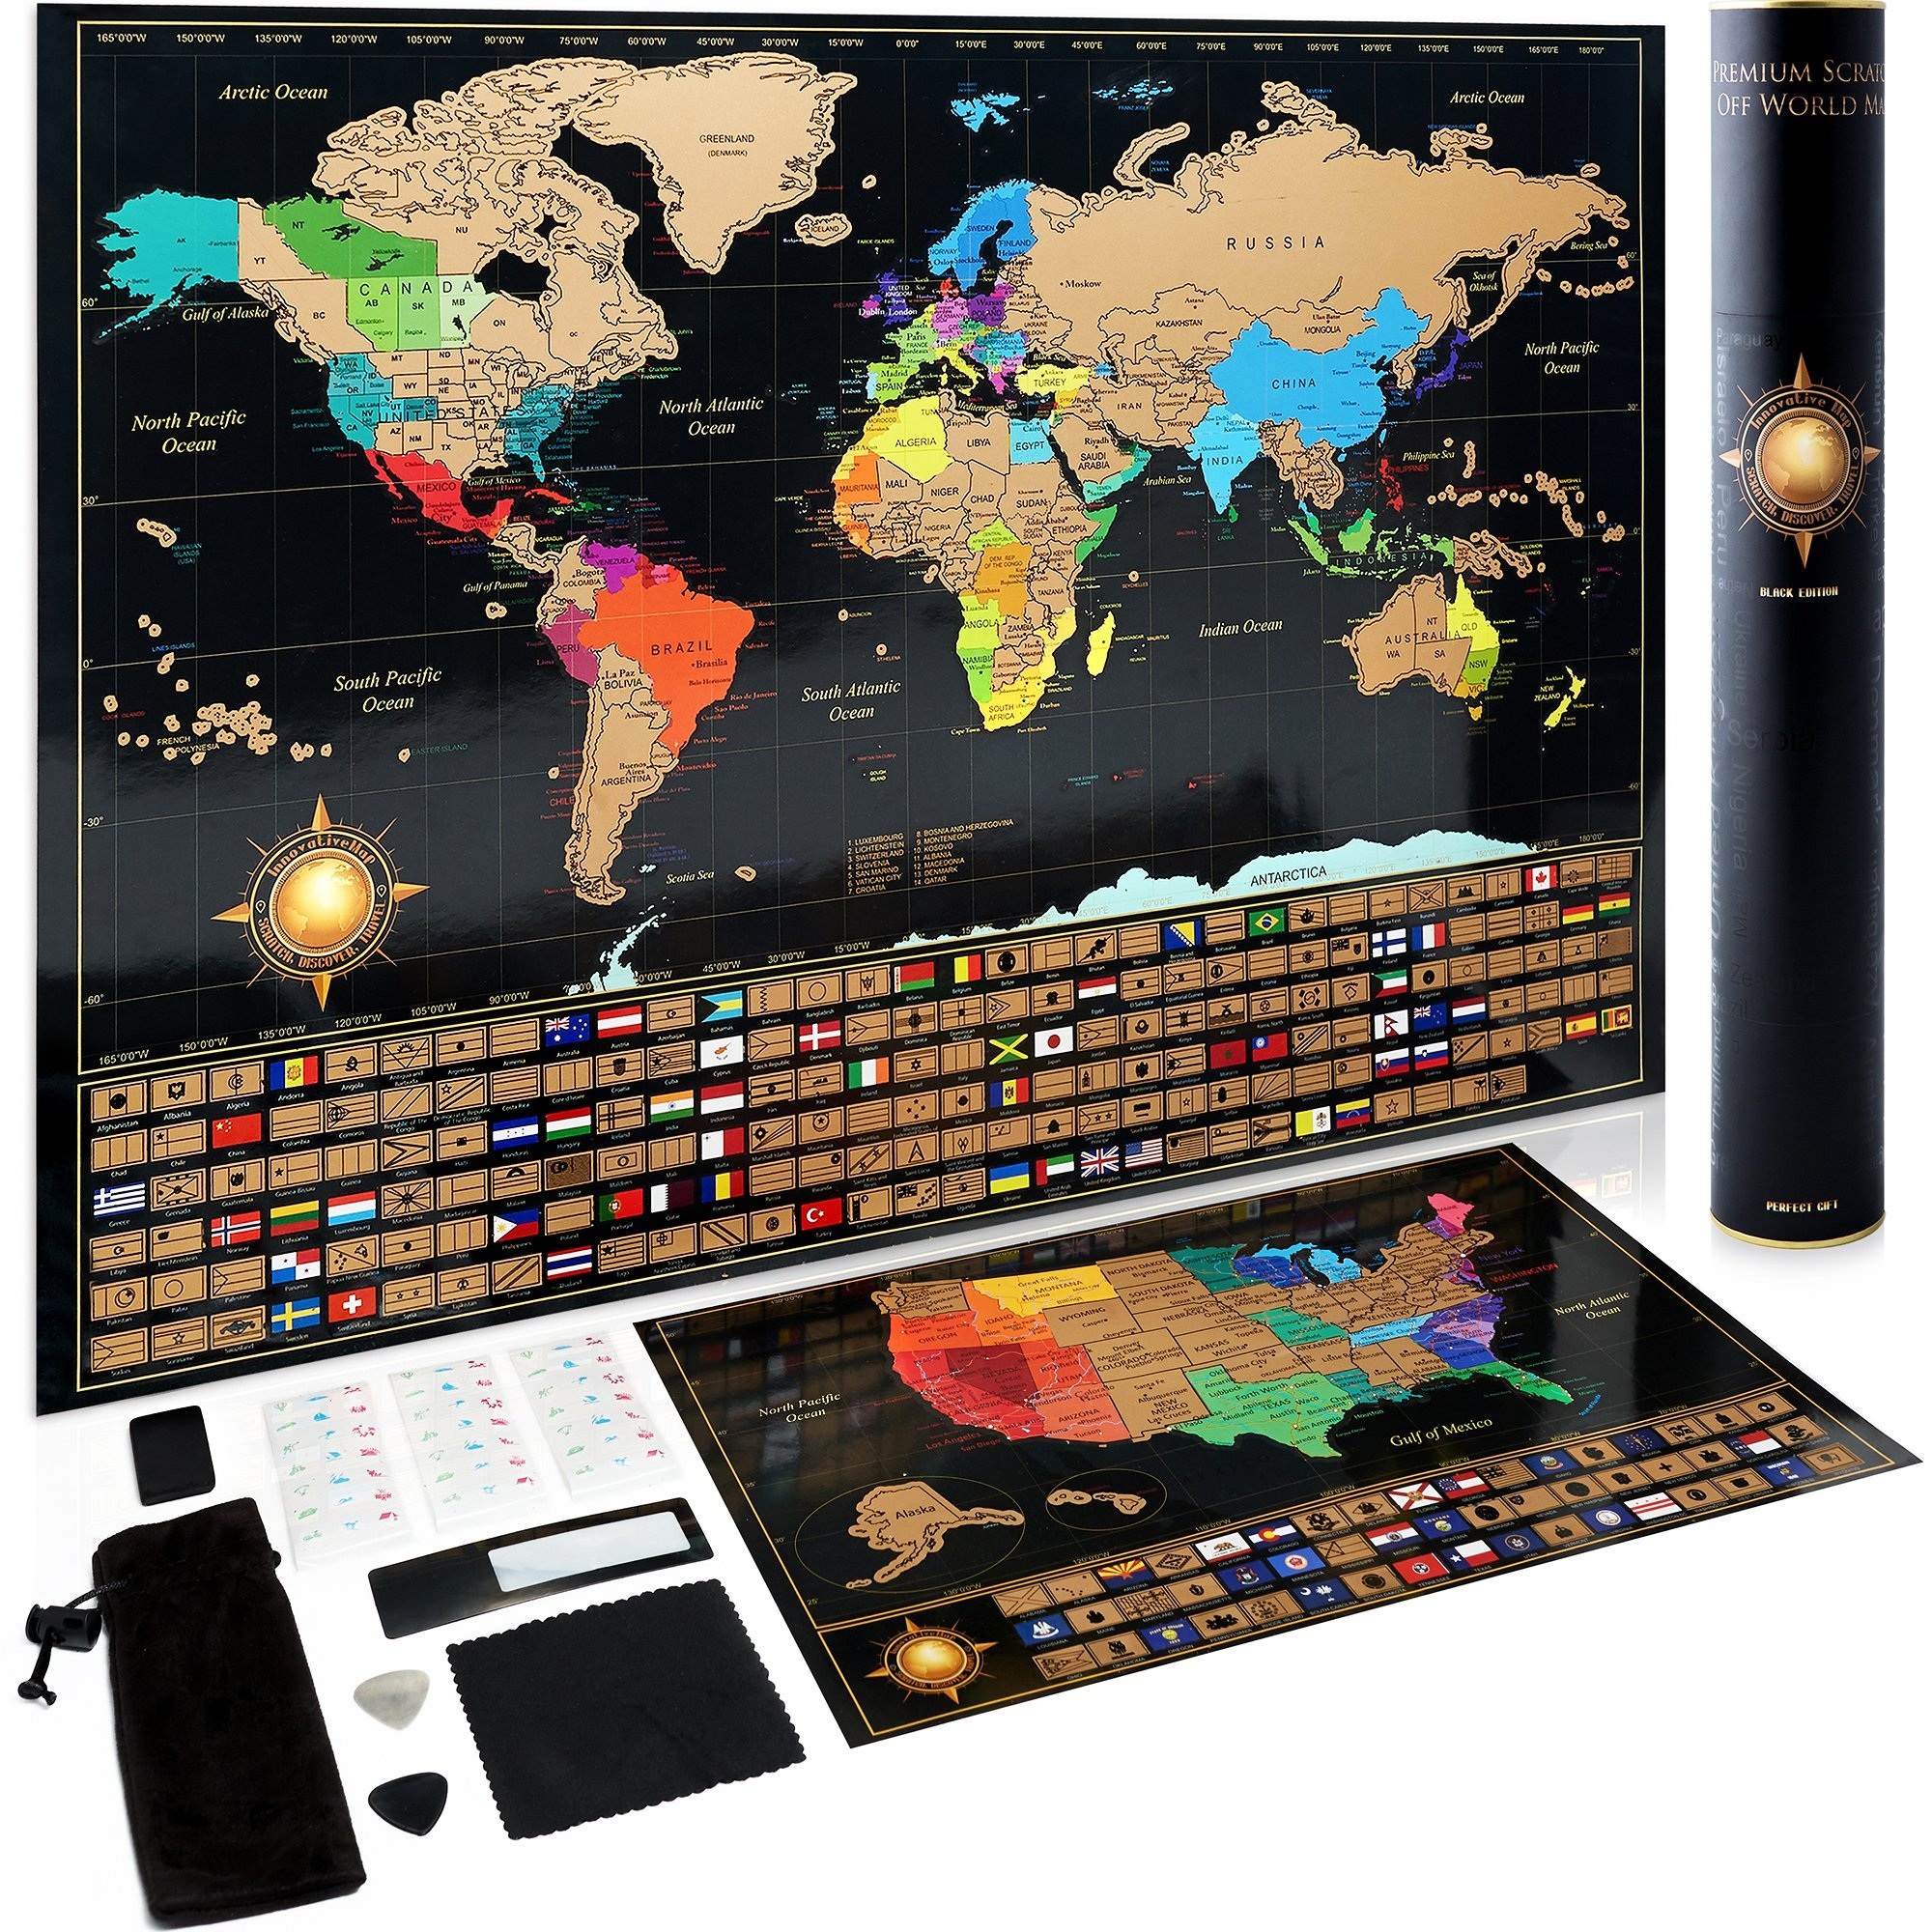 Scratch Off World Map Poster + Deluxe United States Map - Includes Complete Accessories Set & All Country Flags - Premium Wall Art Gift for Loved Ones - Bonus USA Traveler's eBook